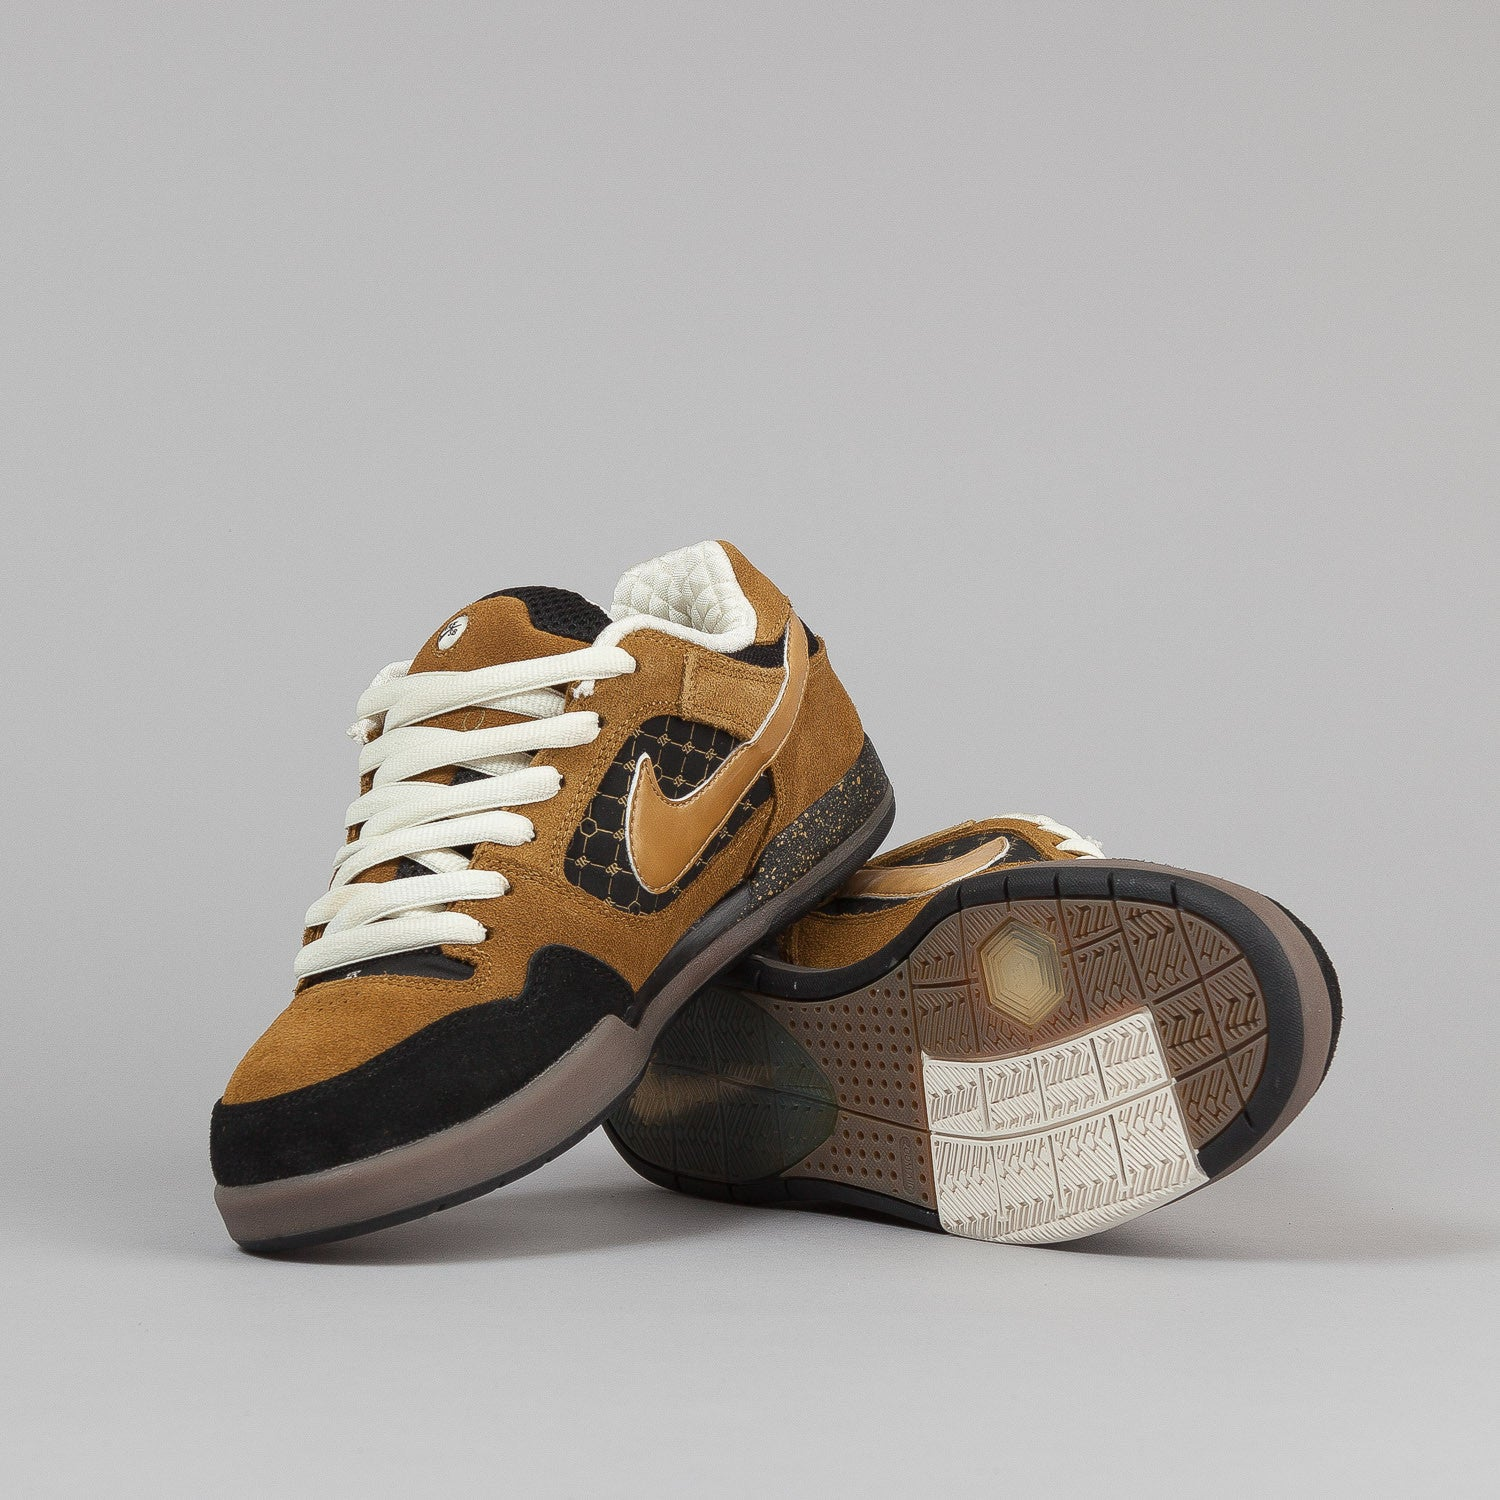 Nike SB Paul Rodriguez 2 Shoes - Black / Metallic Gold